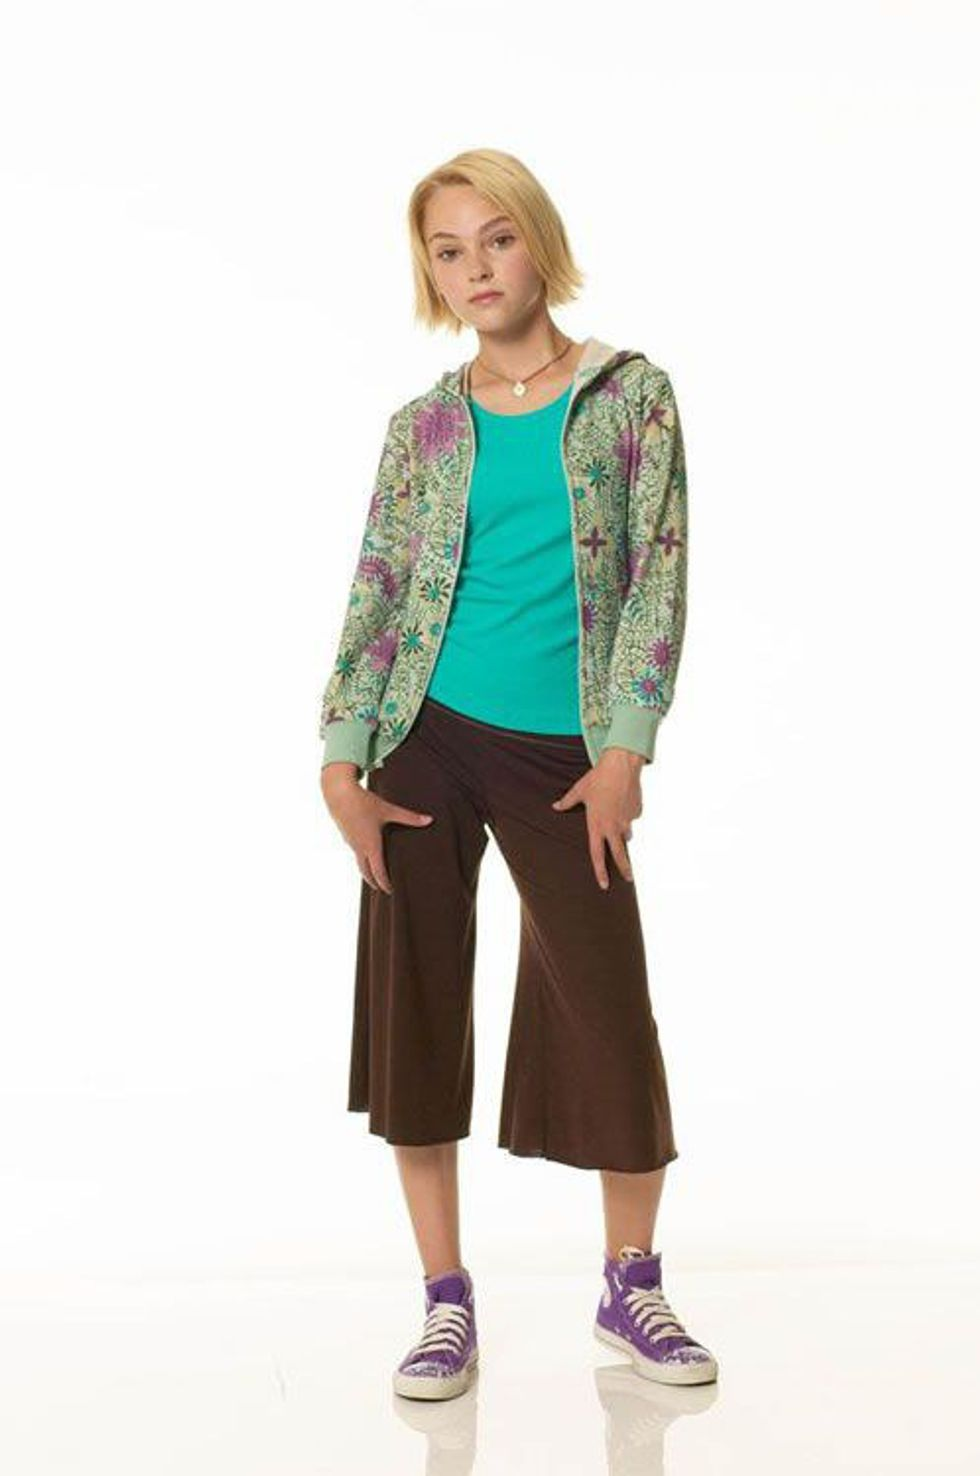 10 Horrible Fashion Trends From Our Middle School Days Gaucho Pants Fashion Mid 2000s Fashion